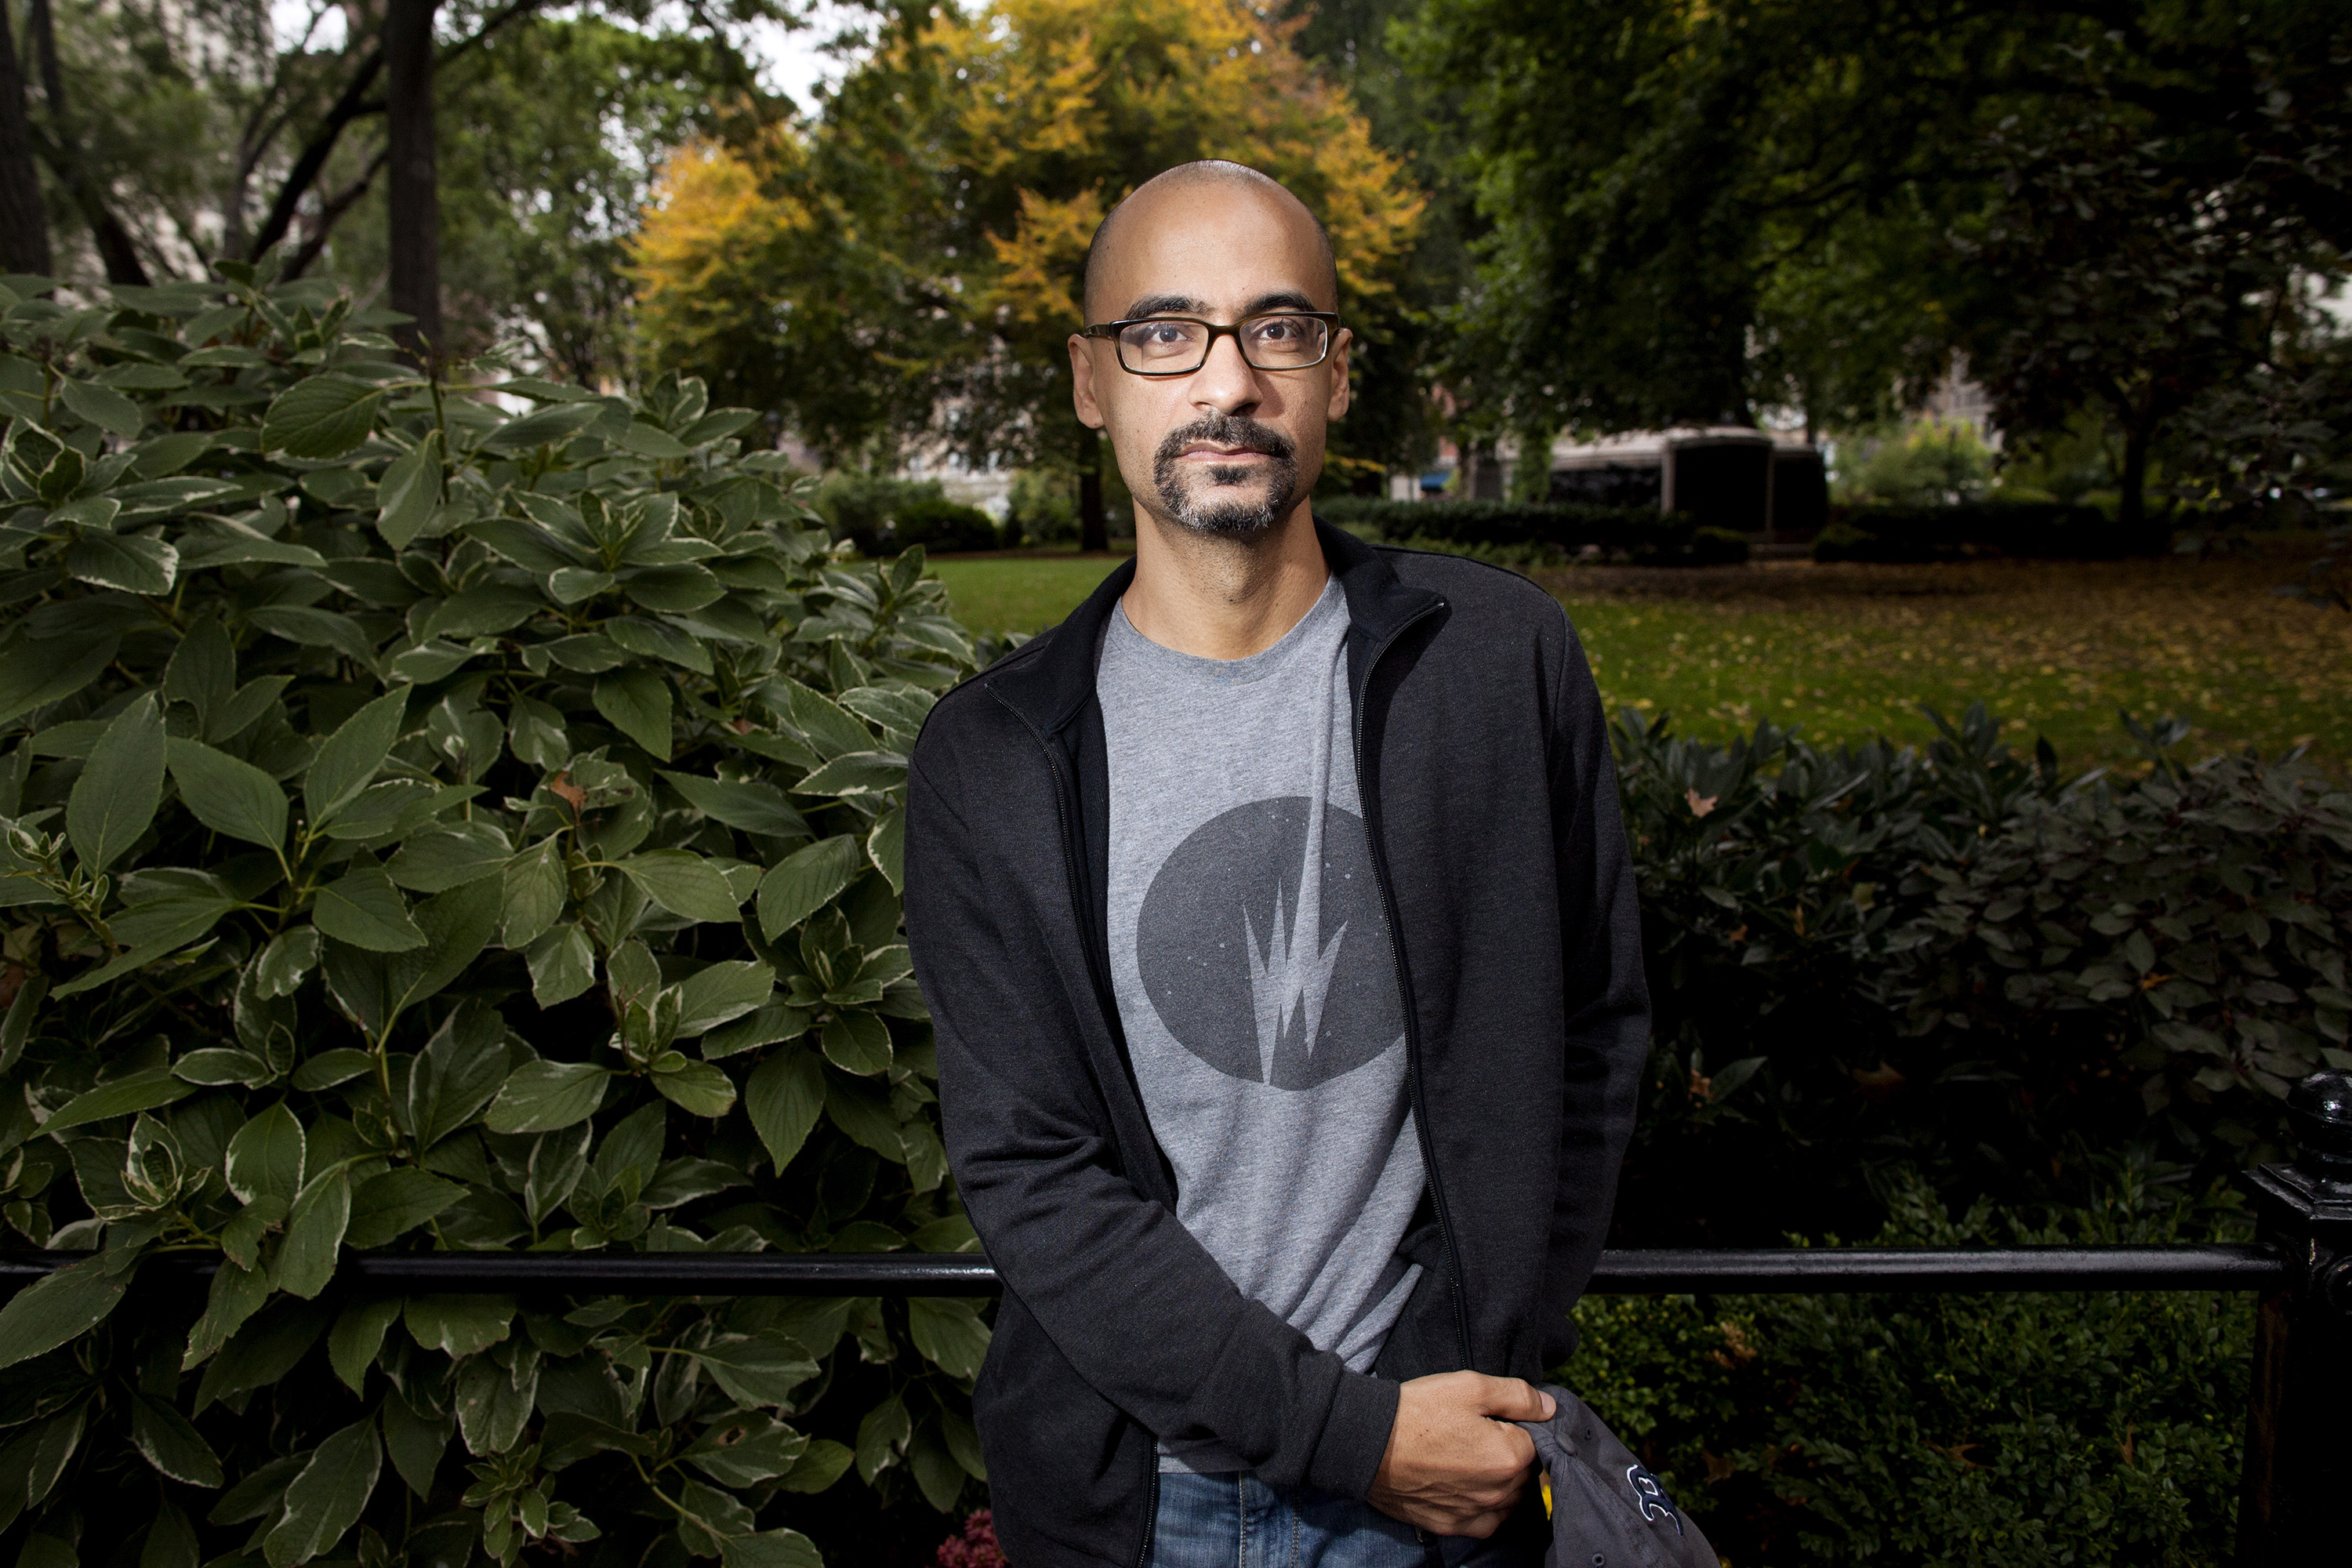 Author Junot Diaz poses in Union Square in New York, N.Y. on Oct. 7, 2013.